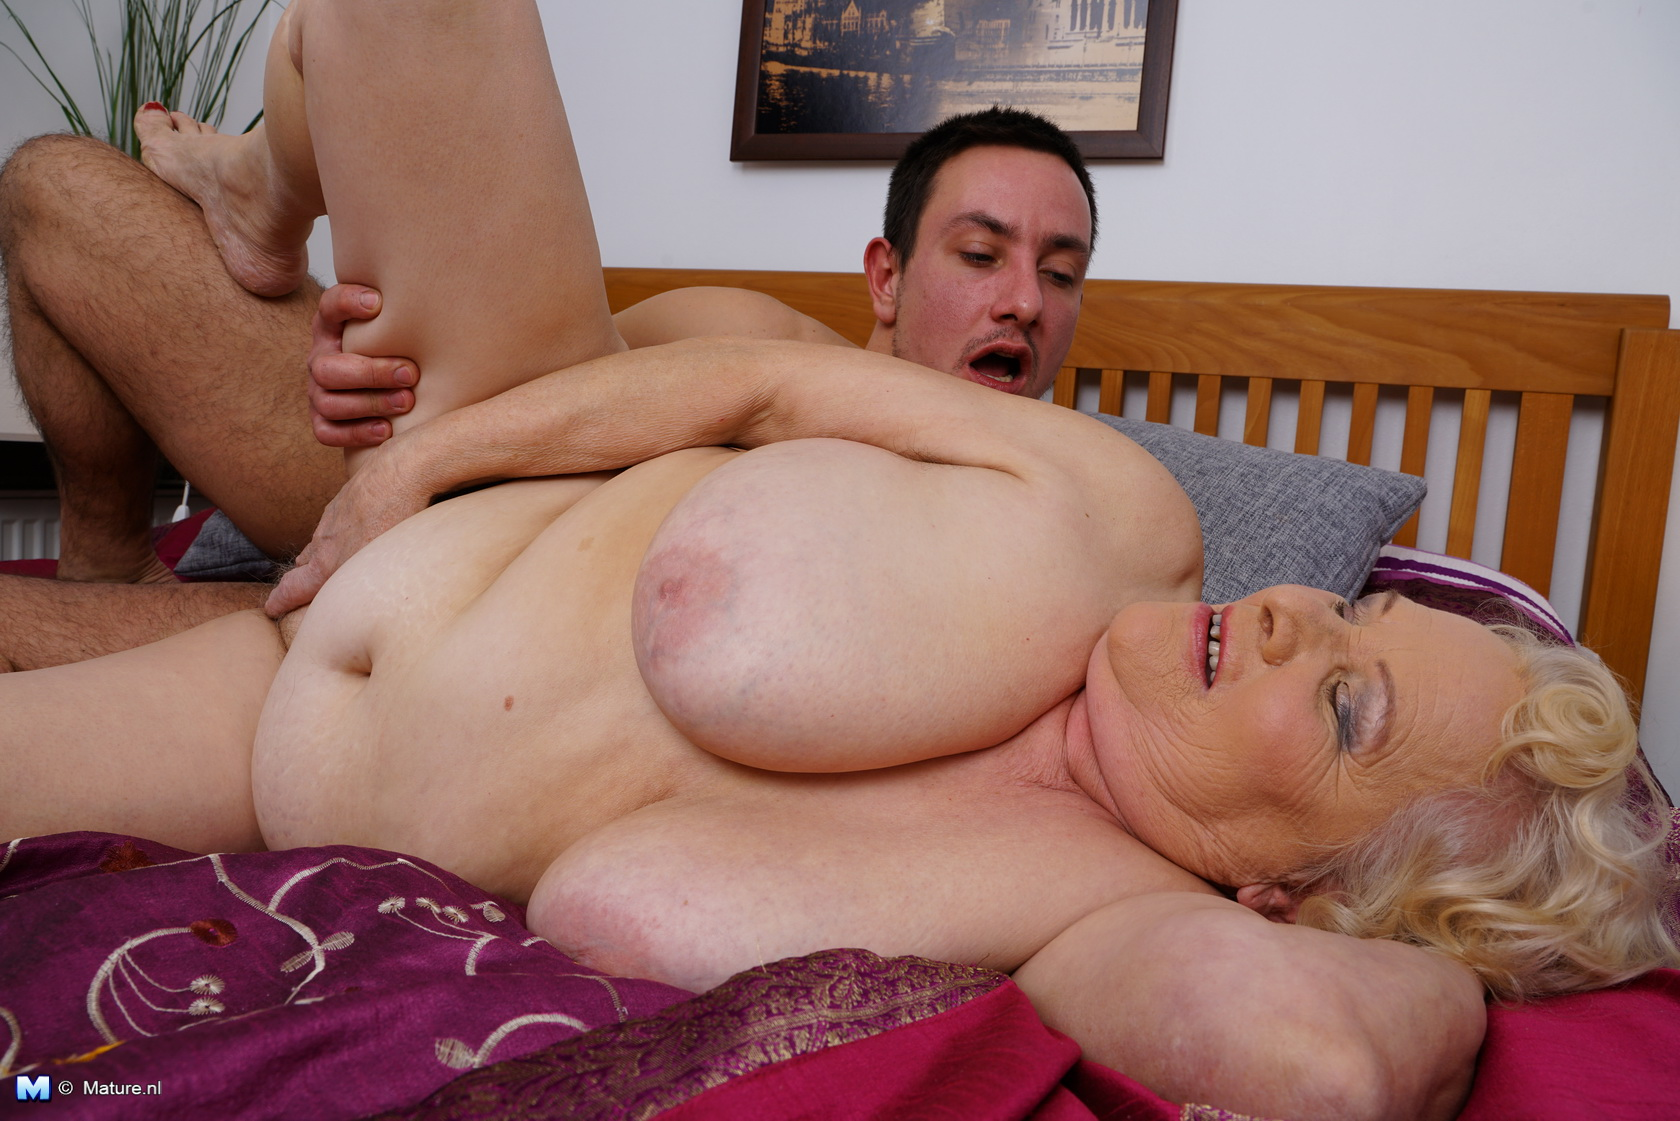 Mature Bbw Playing With Her Toy Boy Big Boobs Gallery